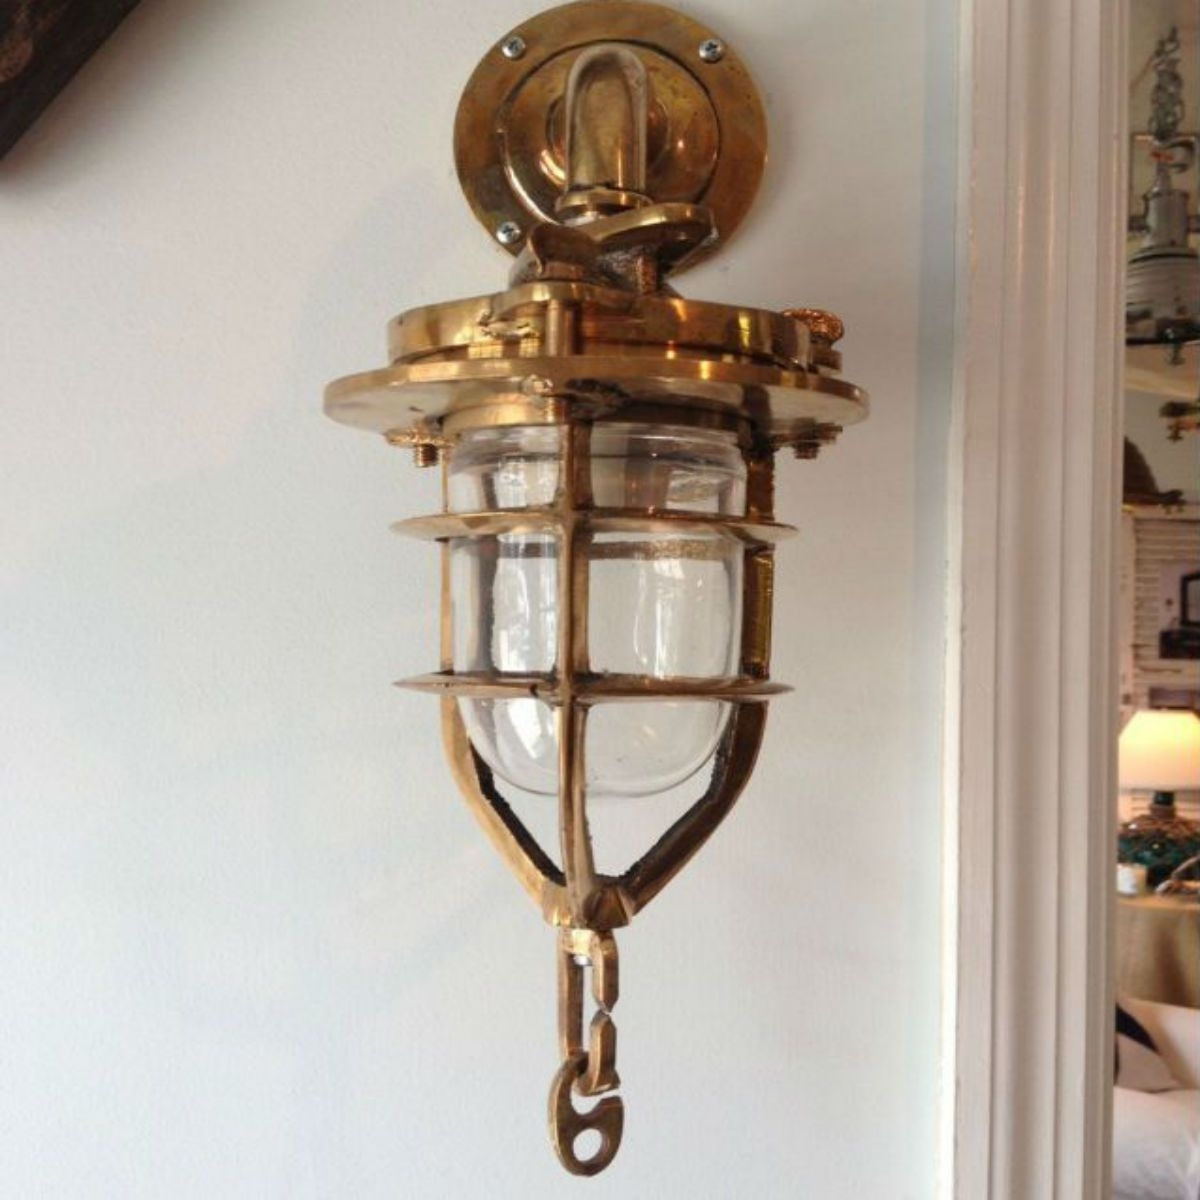 Trendy Outdoor Nautical Lanterns In Brass Convoy Sconce Light 2 Next To Mirror On Angled Wall Over Teak (View 11 of 20)